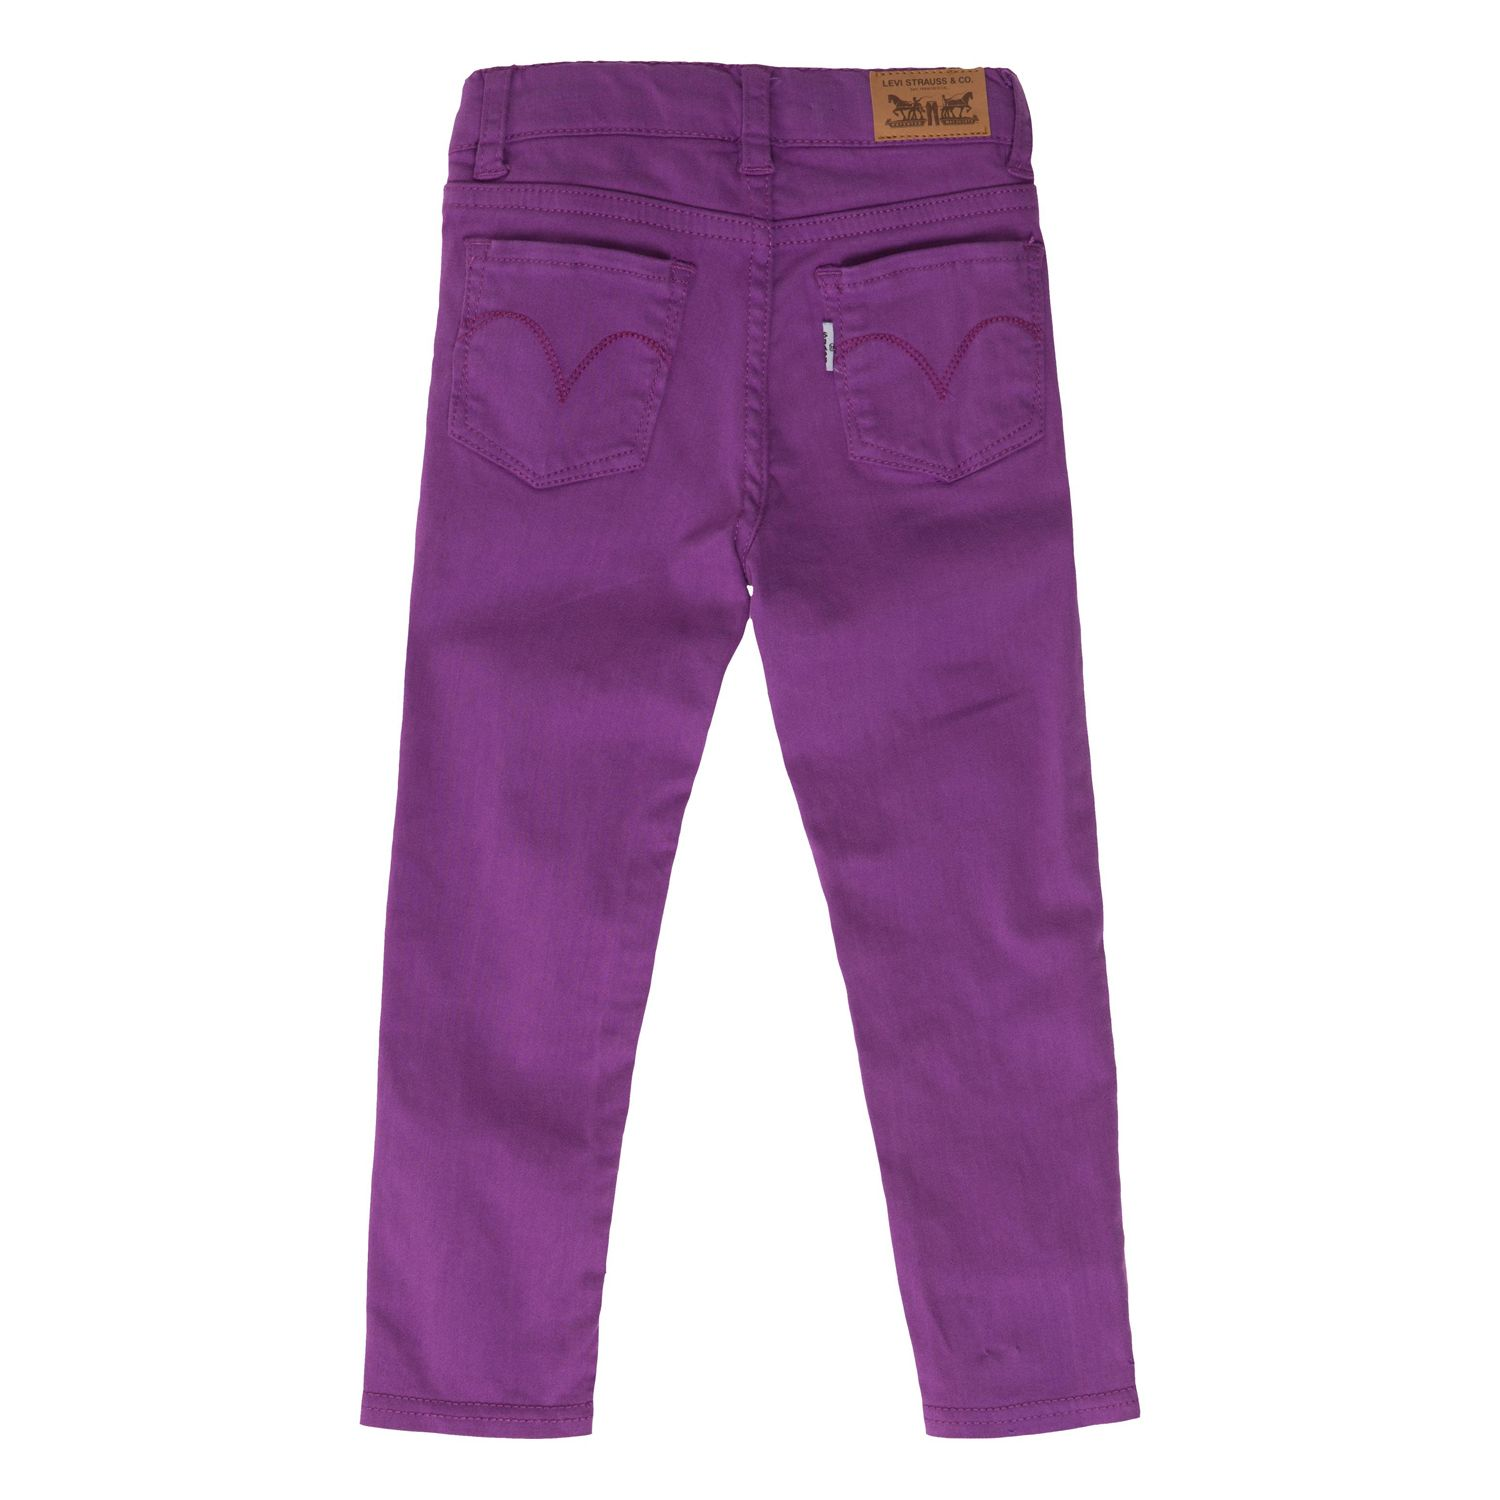 d91d399753be9 Girls Levi's Kids Jeggings | Kohl's